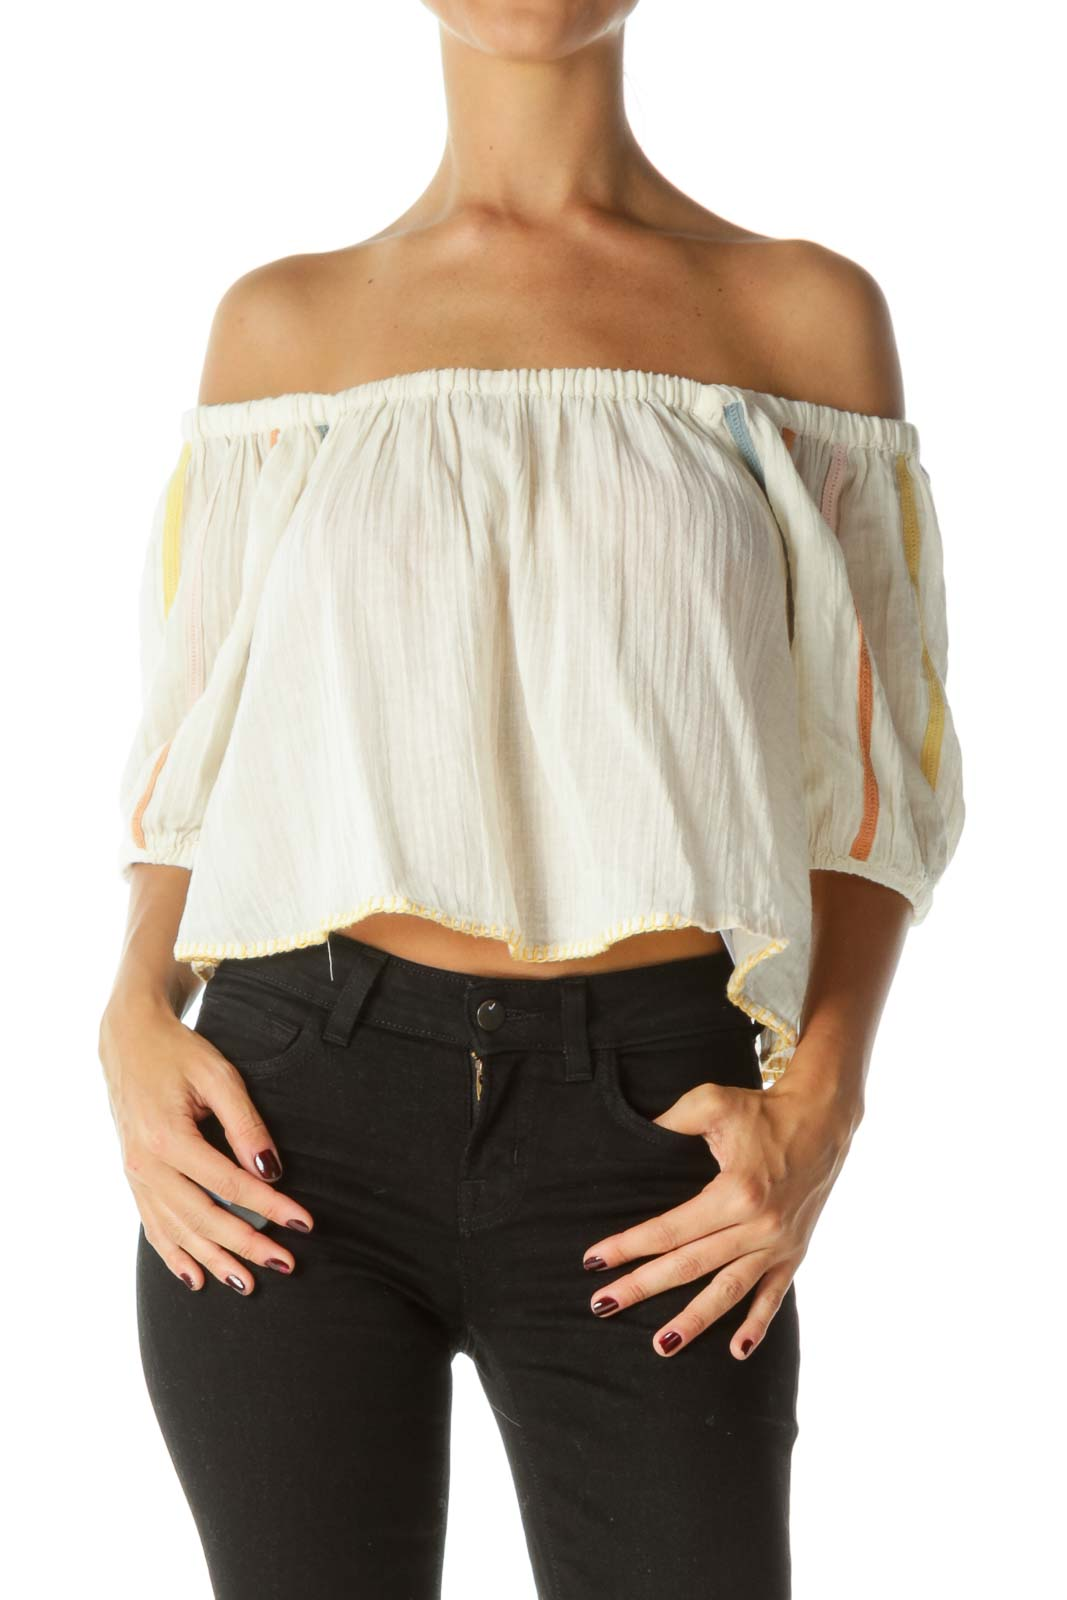 Cream Multicolored-Knit-Appliques and Trim Embroidery 100% Cotton Cold Shoulder Top